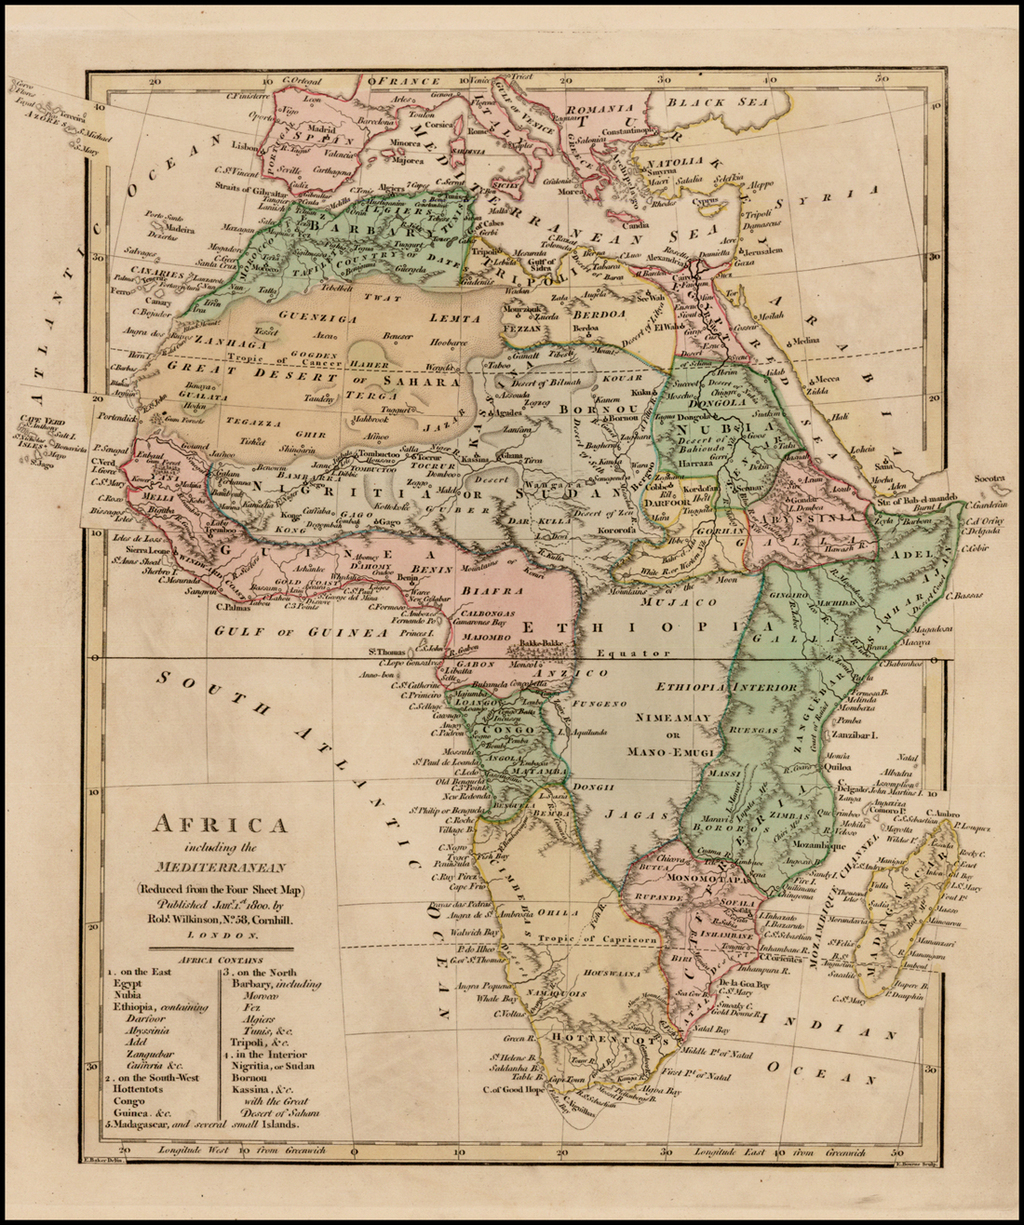 Map Of Africa In 1800.Africa Including The Mediterranean Reduced From The Four Sheet Map